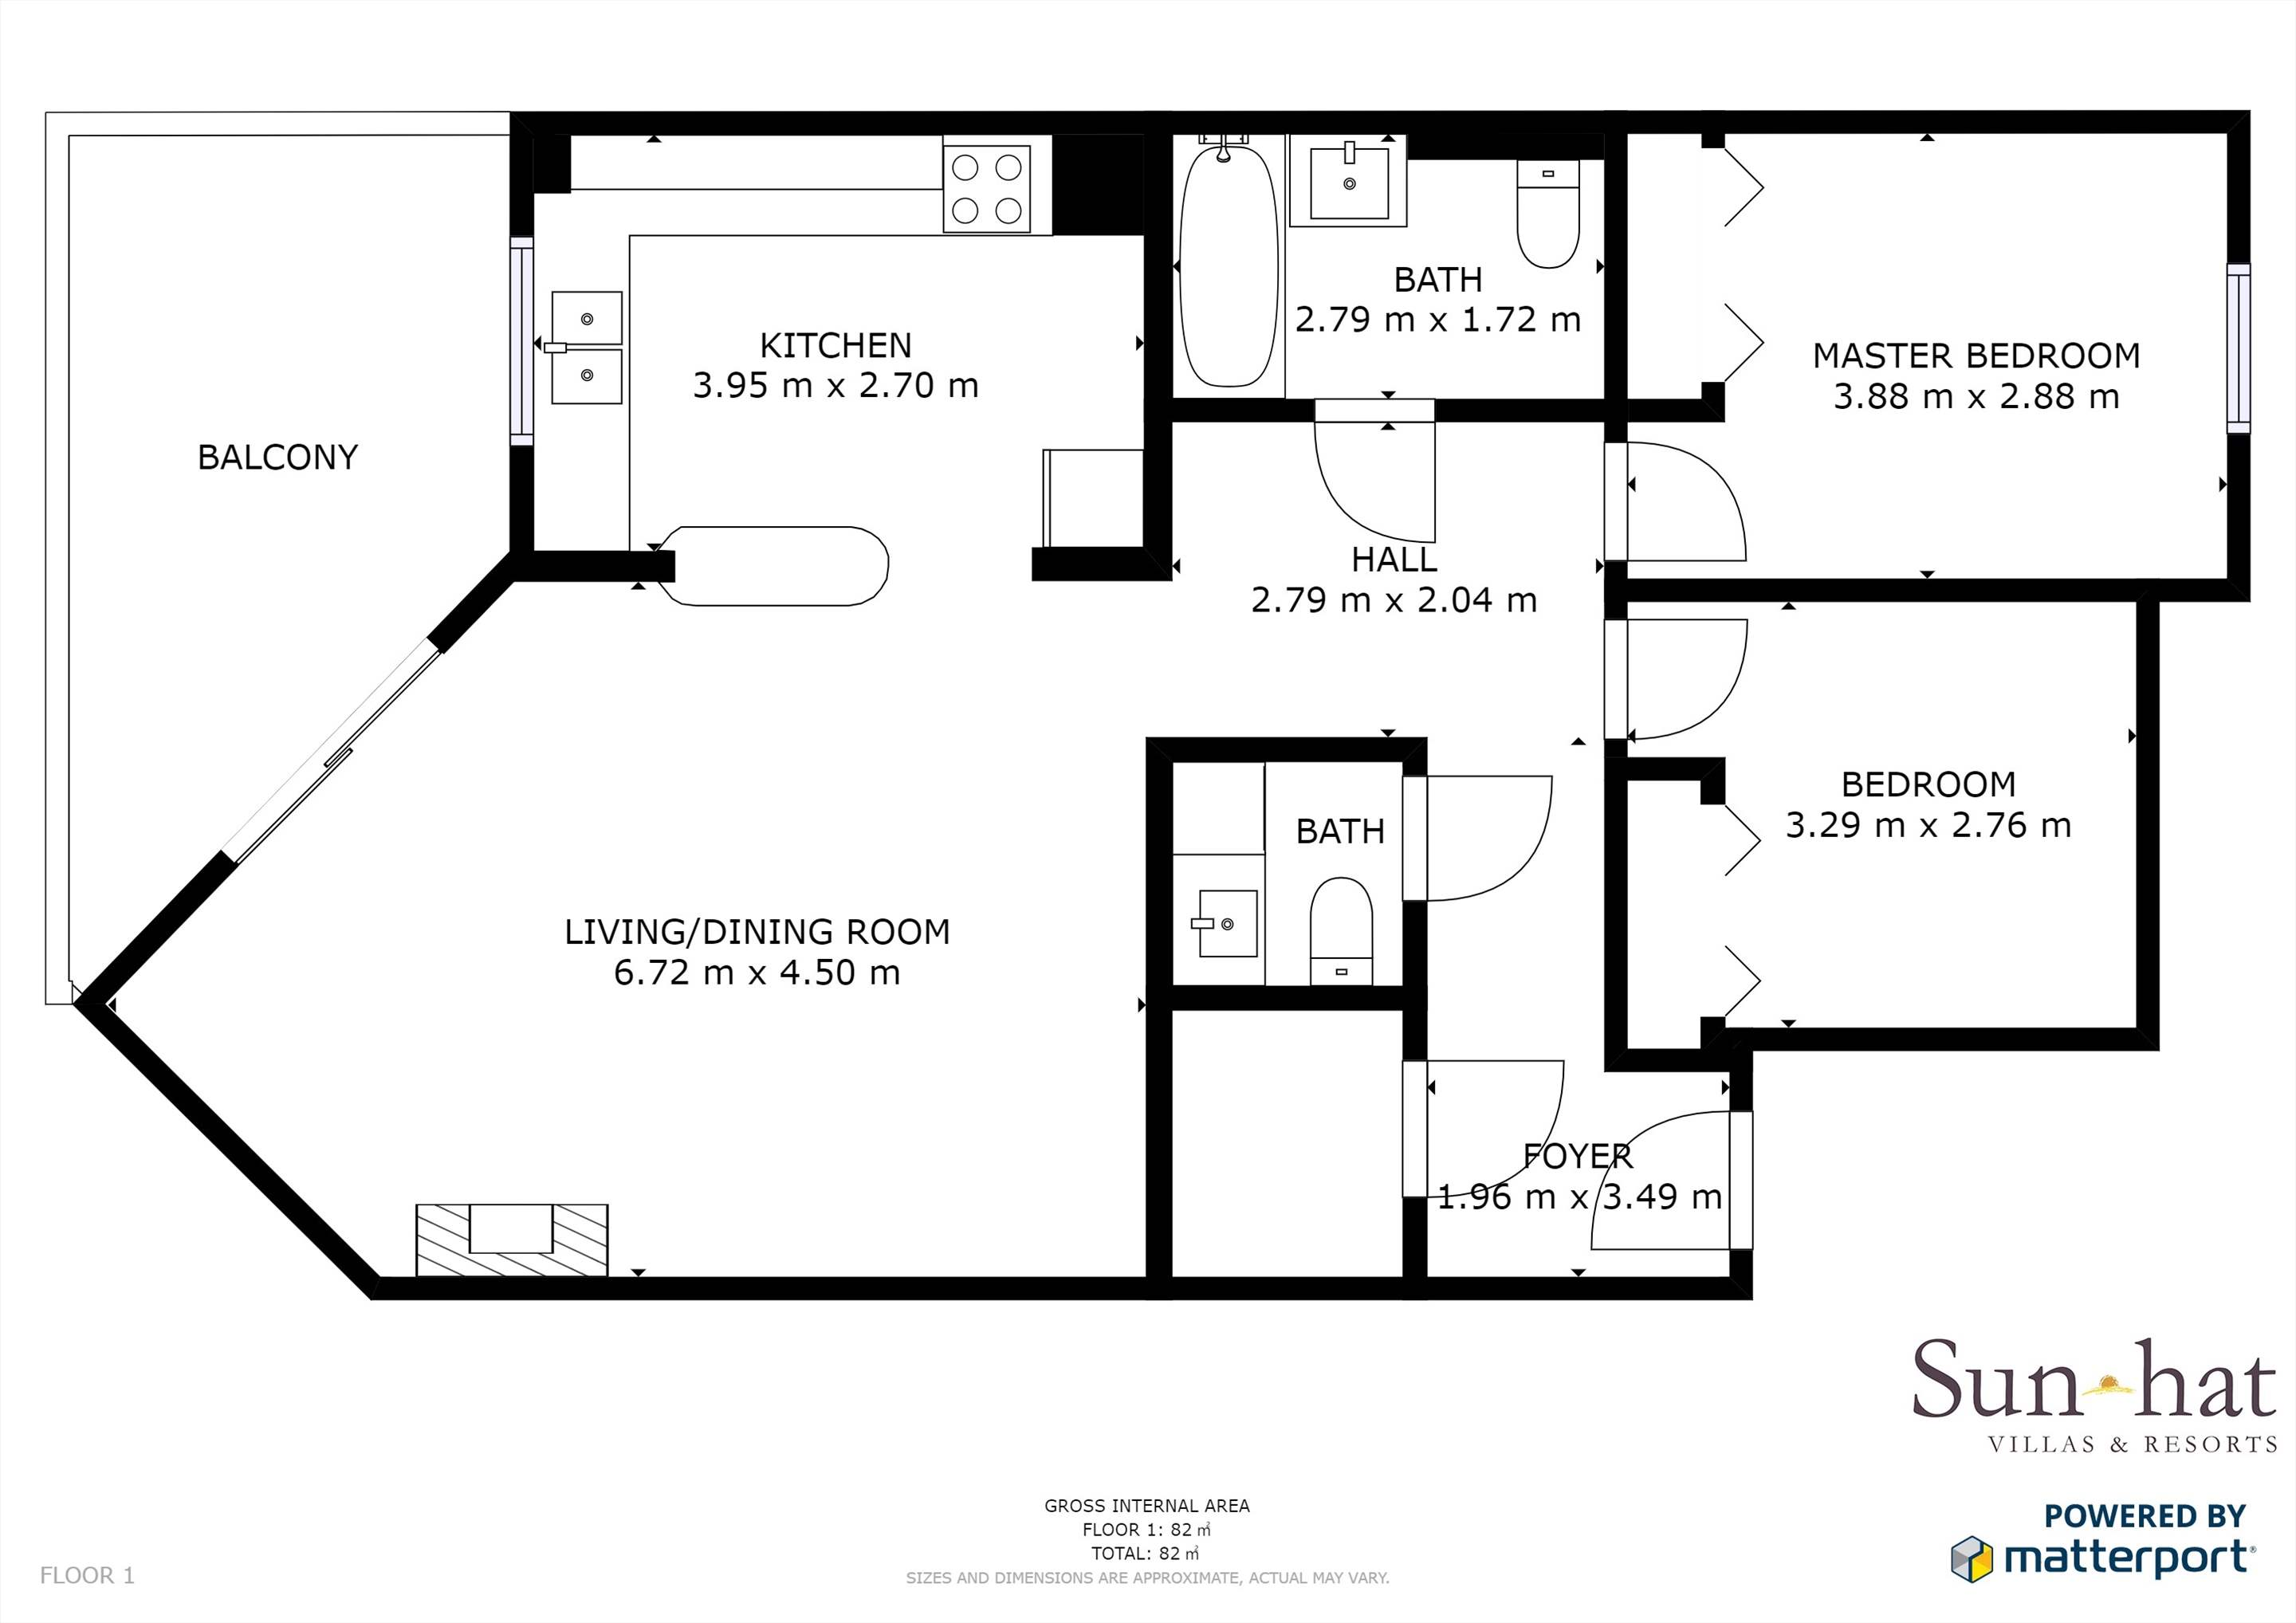 Placid Village, Three Bedroom Apartment Floorplan #1